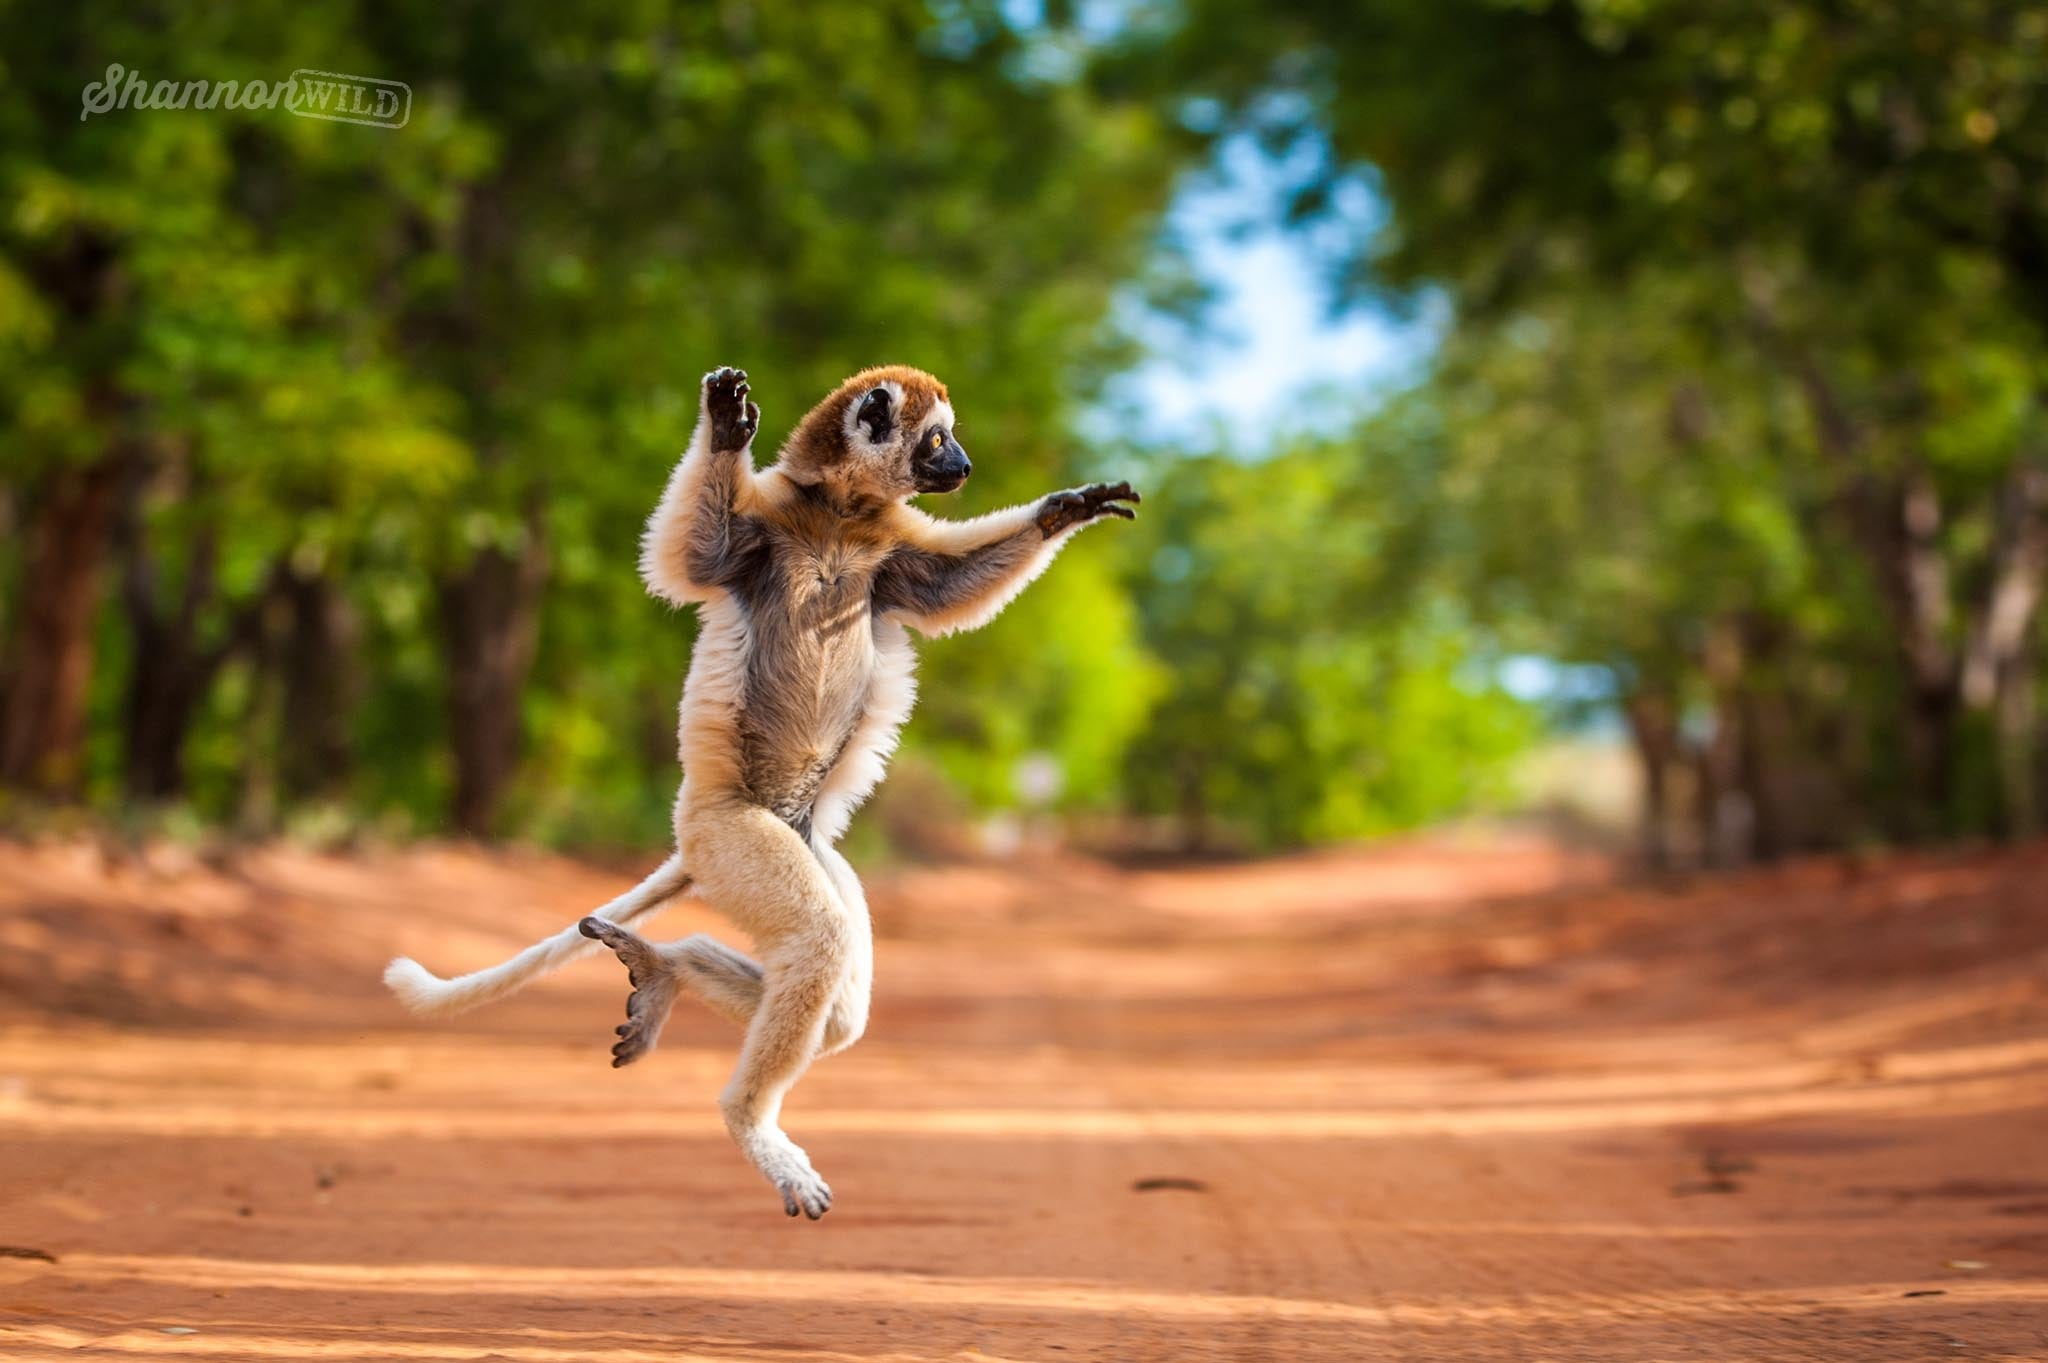 Dancing_Animals_By_Shannon_Benson_ShannonWild